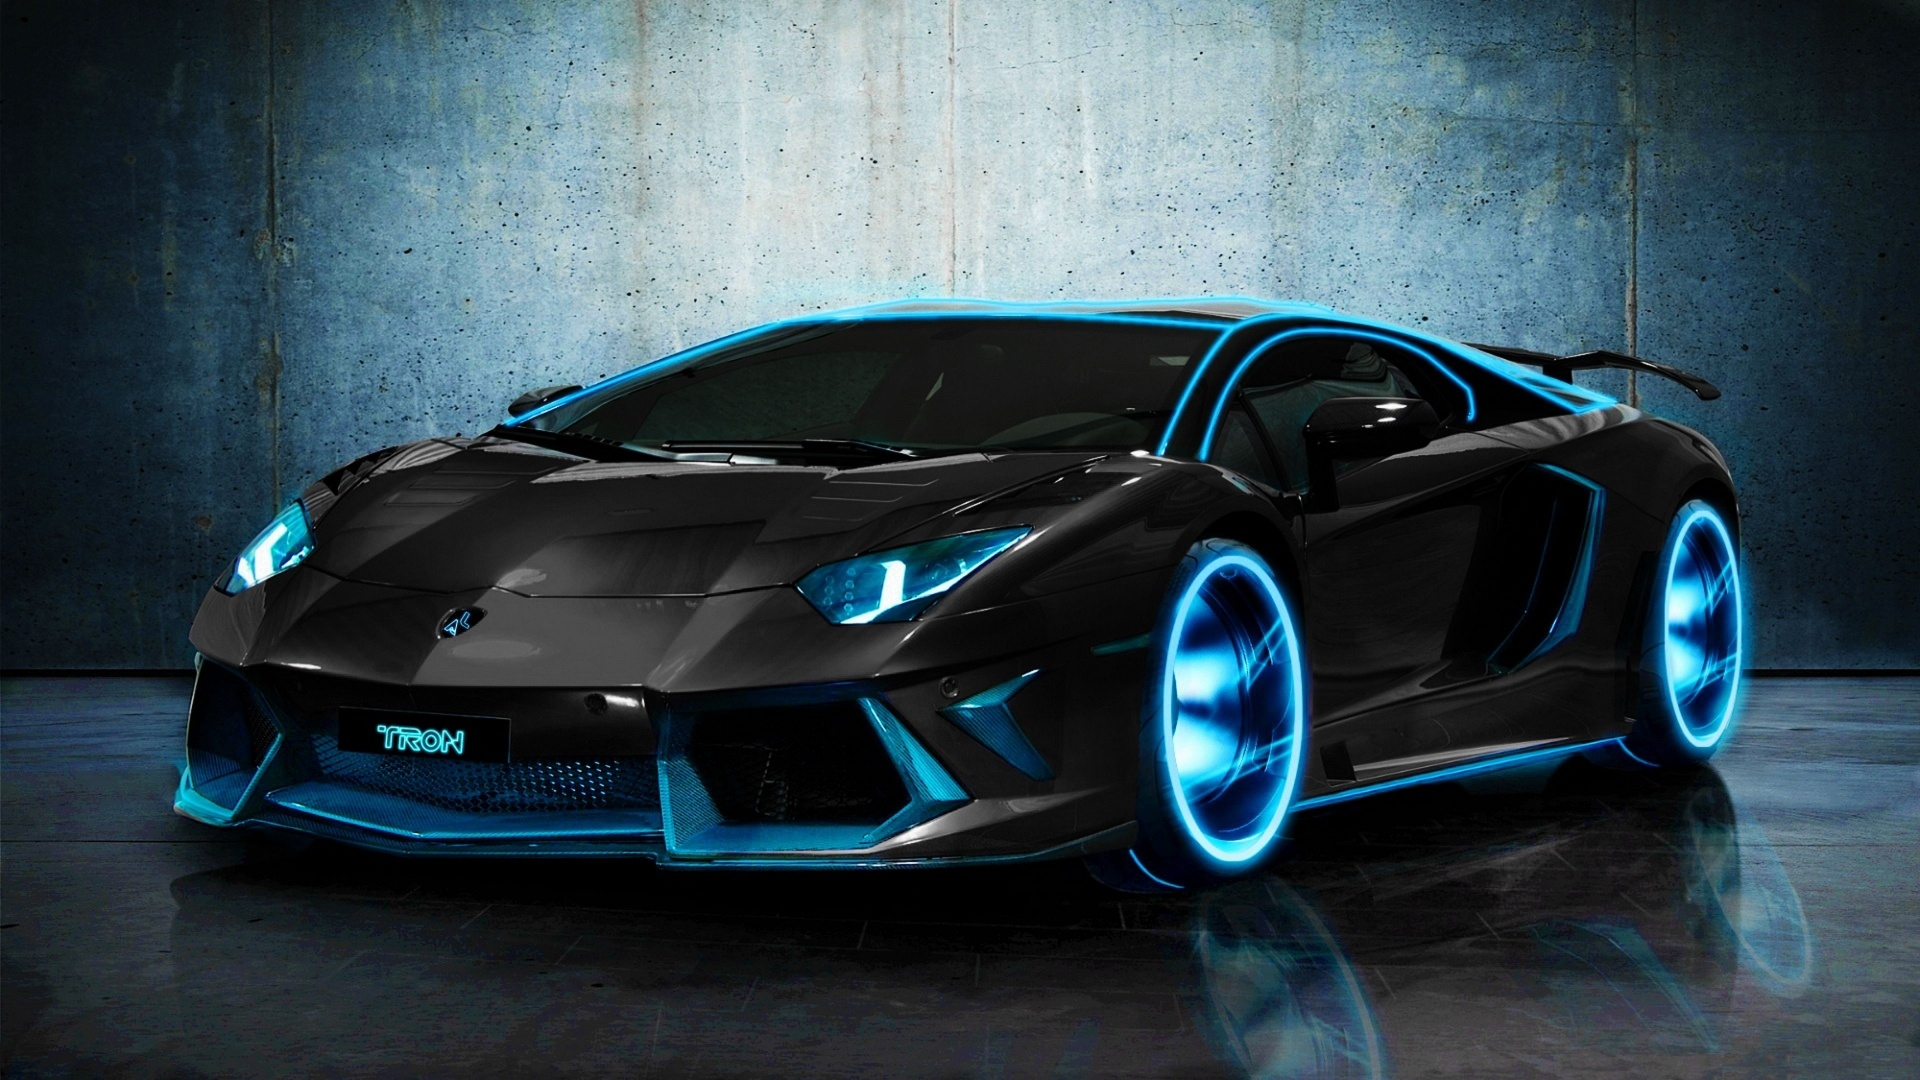 Download Tron Lamborghini Aventador Wallpaper Hd 1080p Pictures